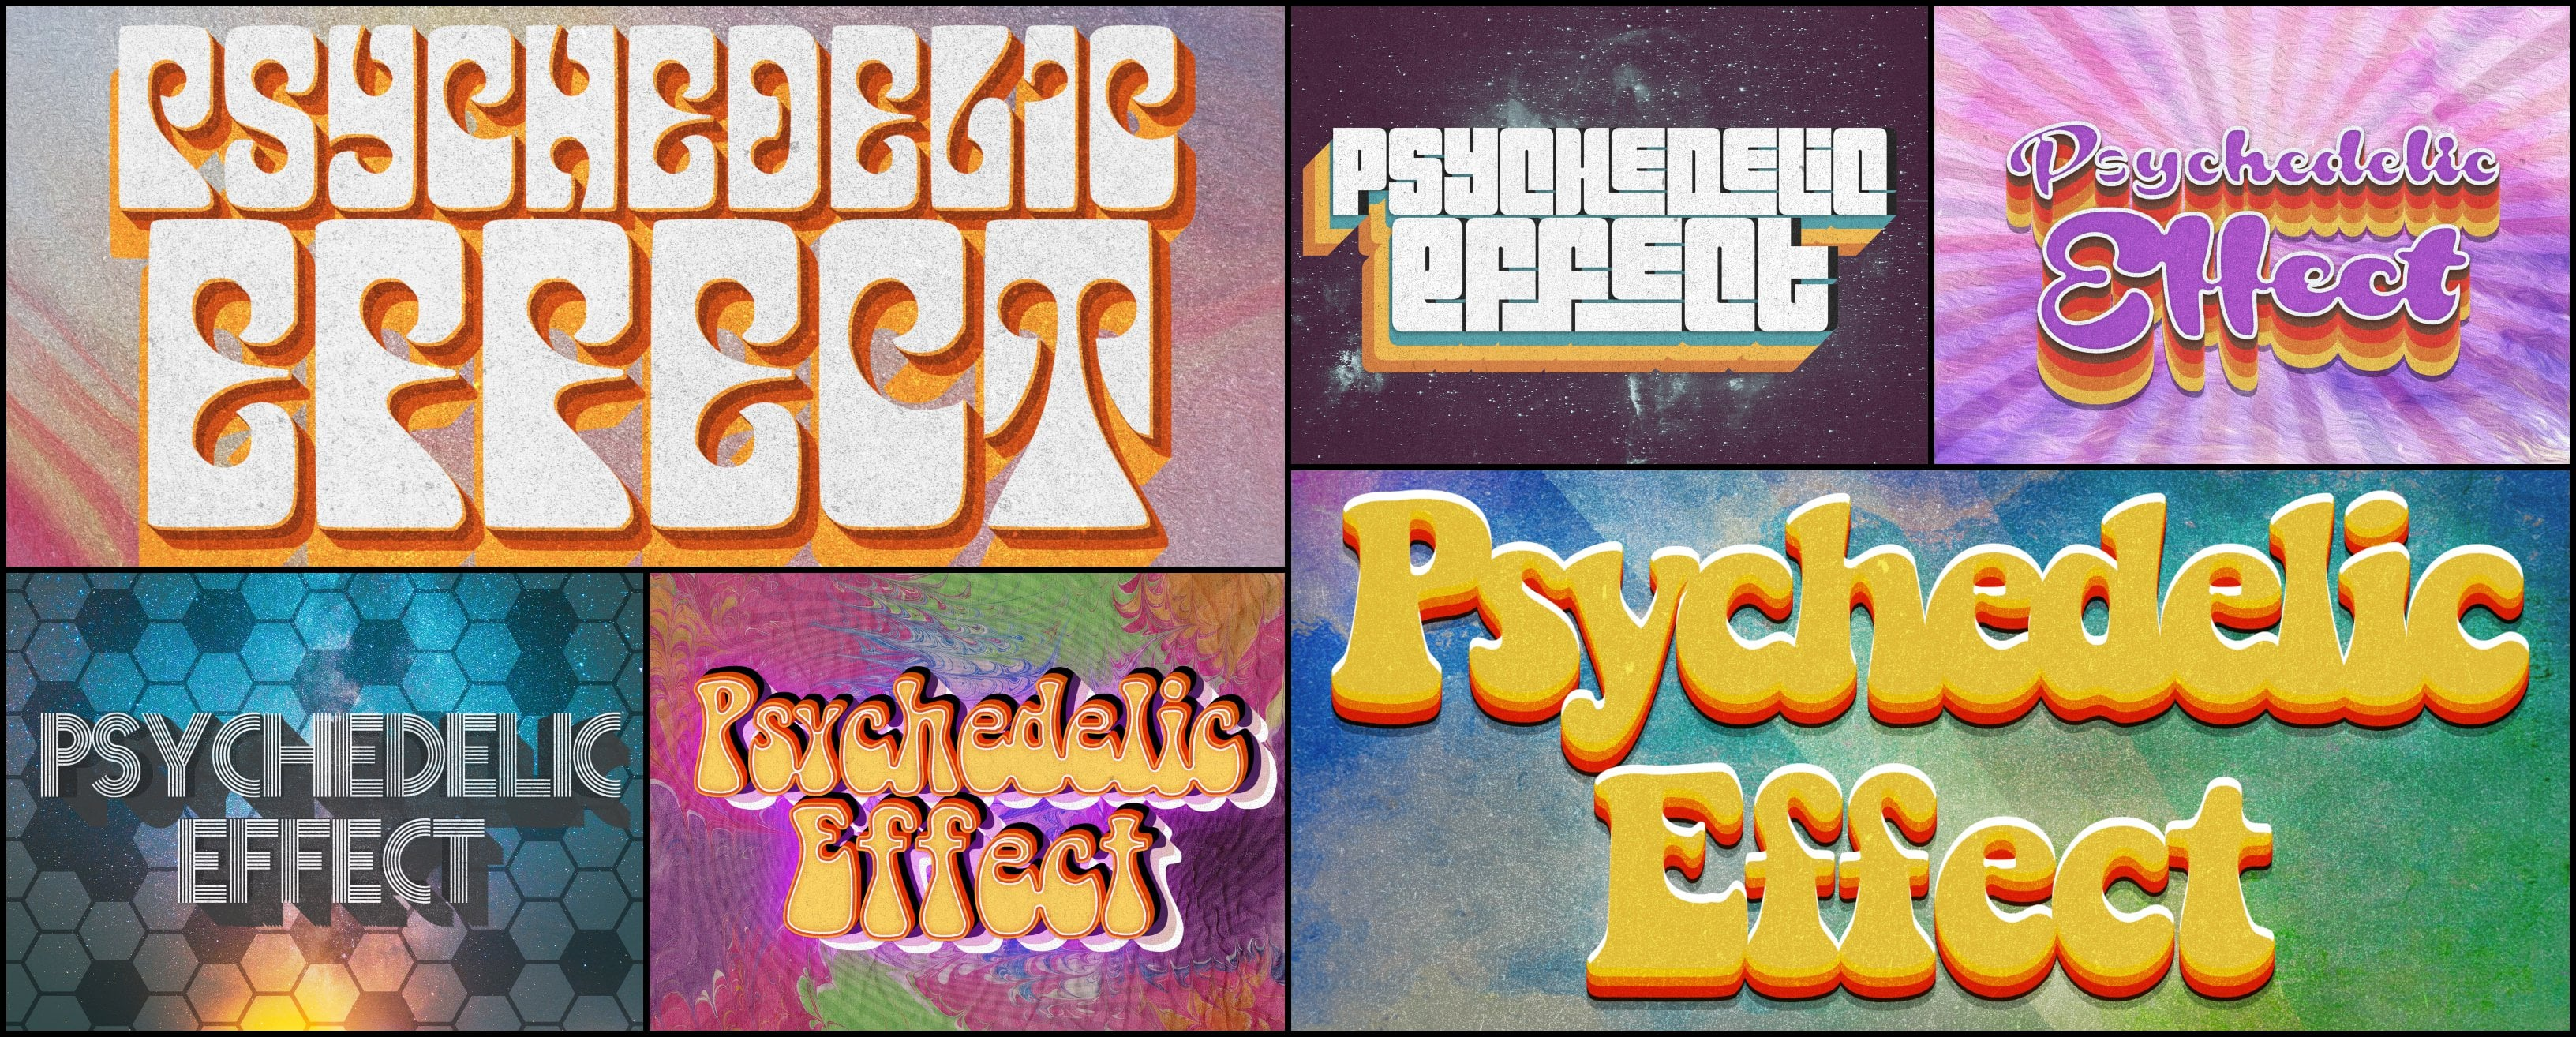 Photoshop Elements Text Effects - 40 Different Styles - 3